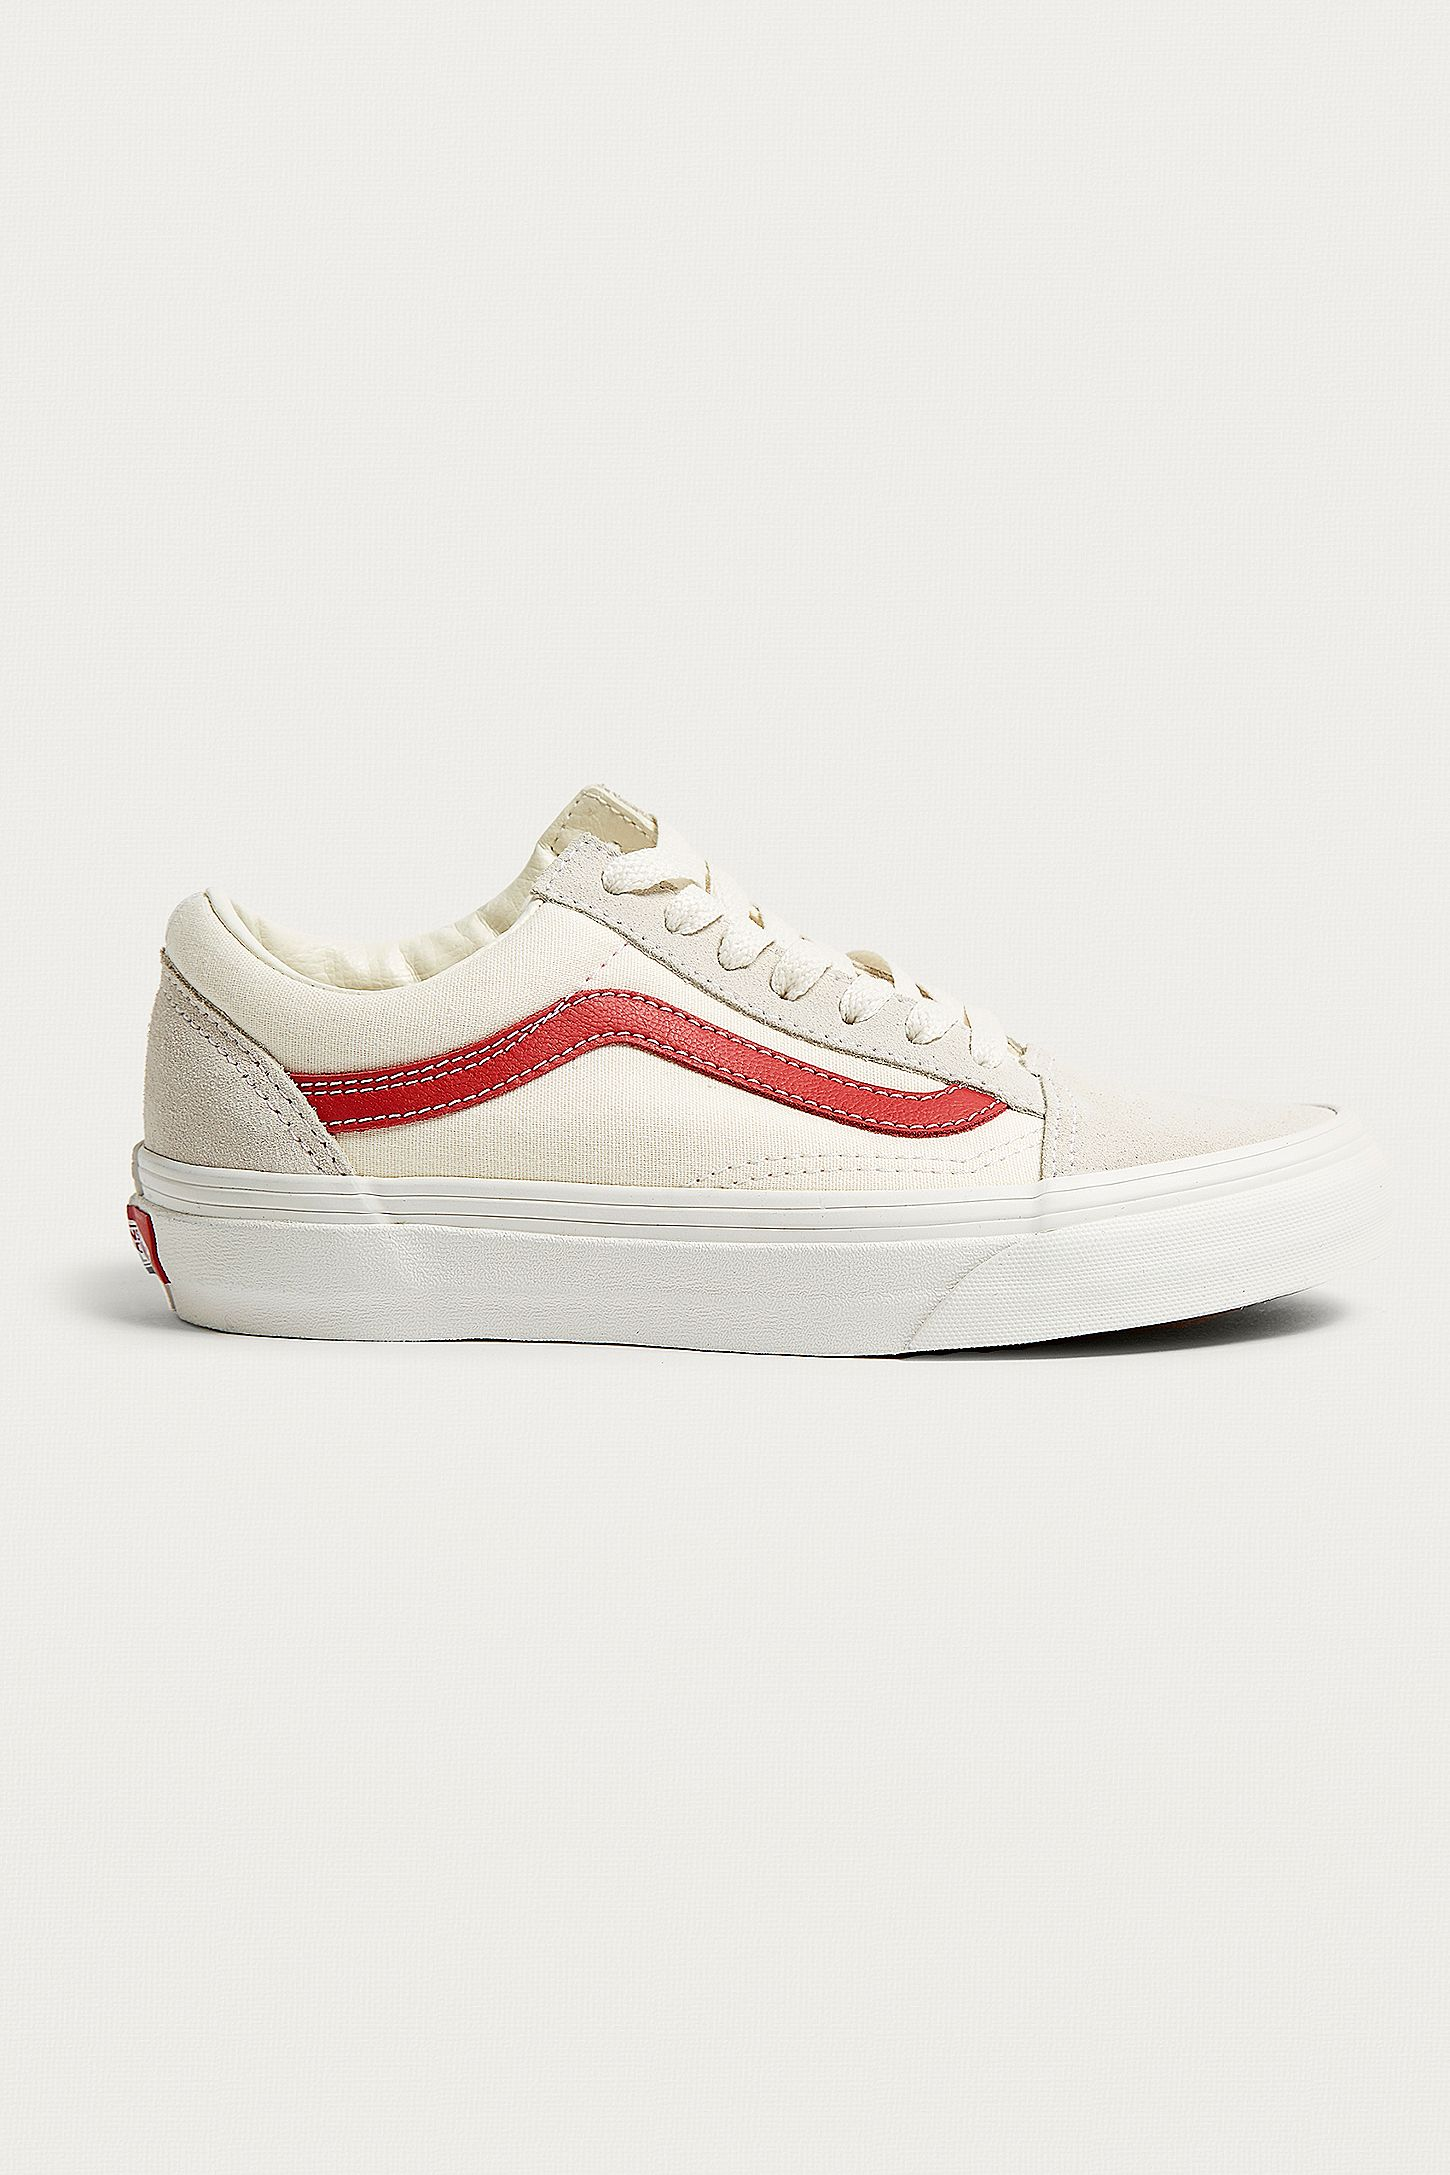 35392d560b26fb Vans Old Skool White and Red Trainers